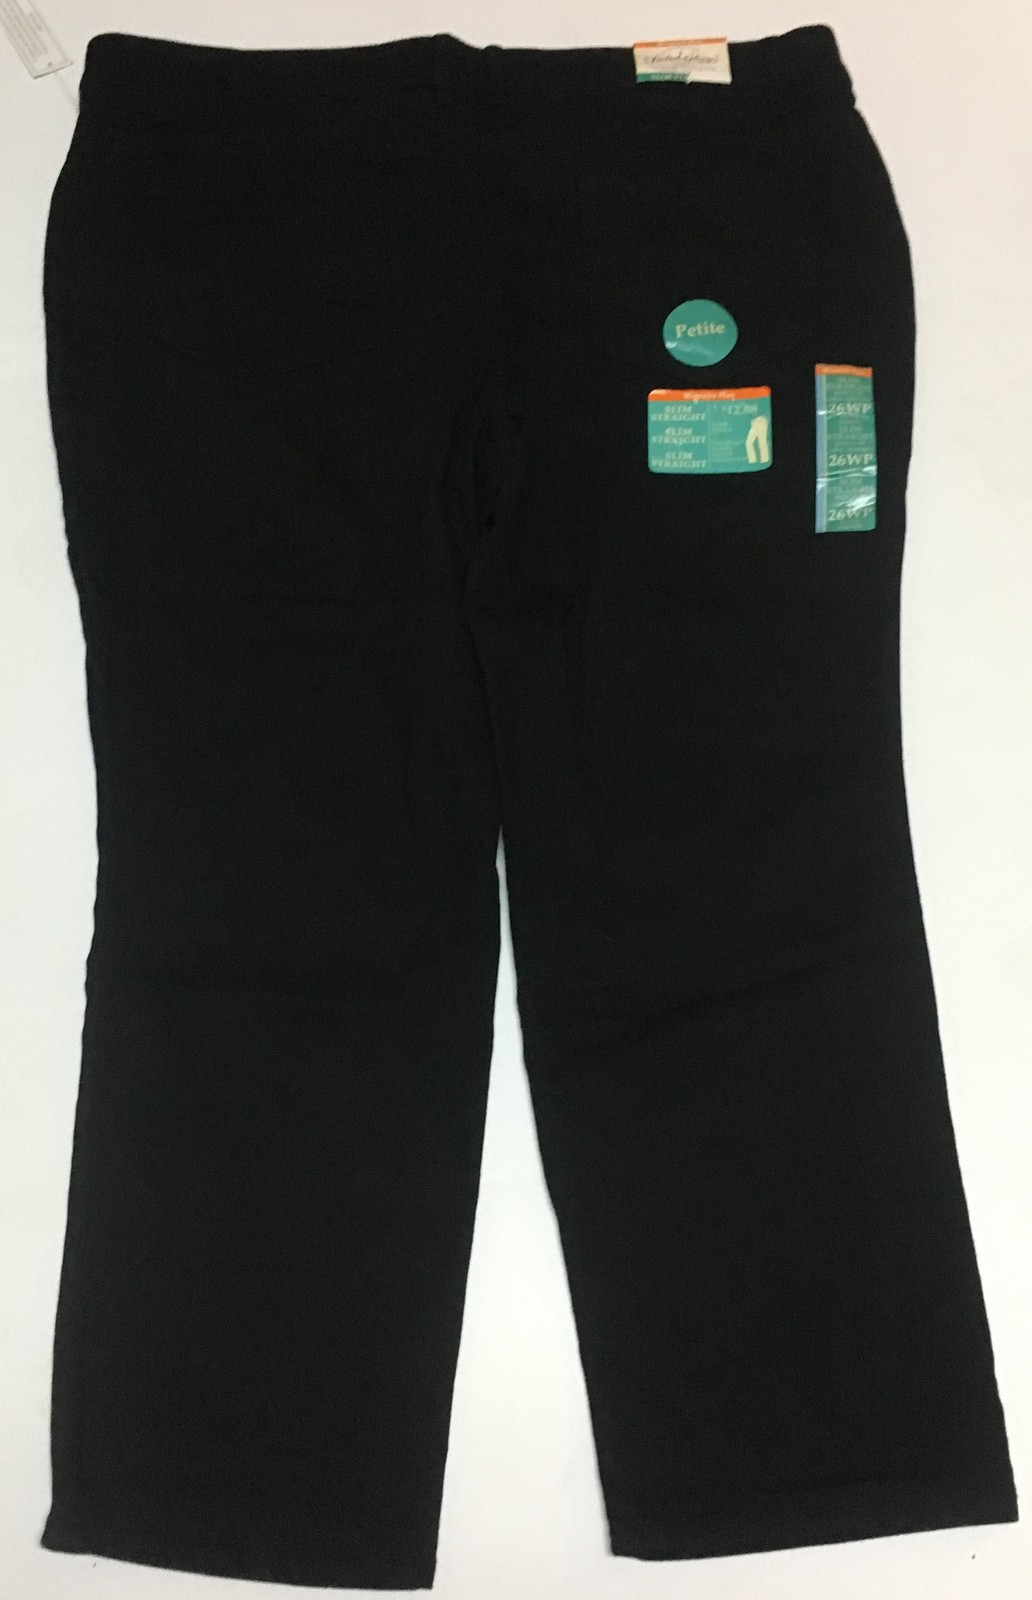 Faded Glory Black Jeans Sz 26WP NWT Slimming Fit